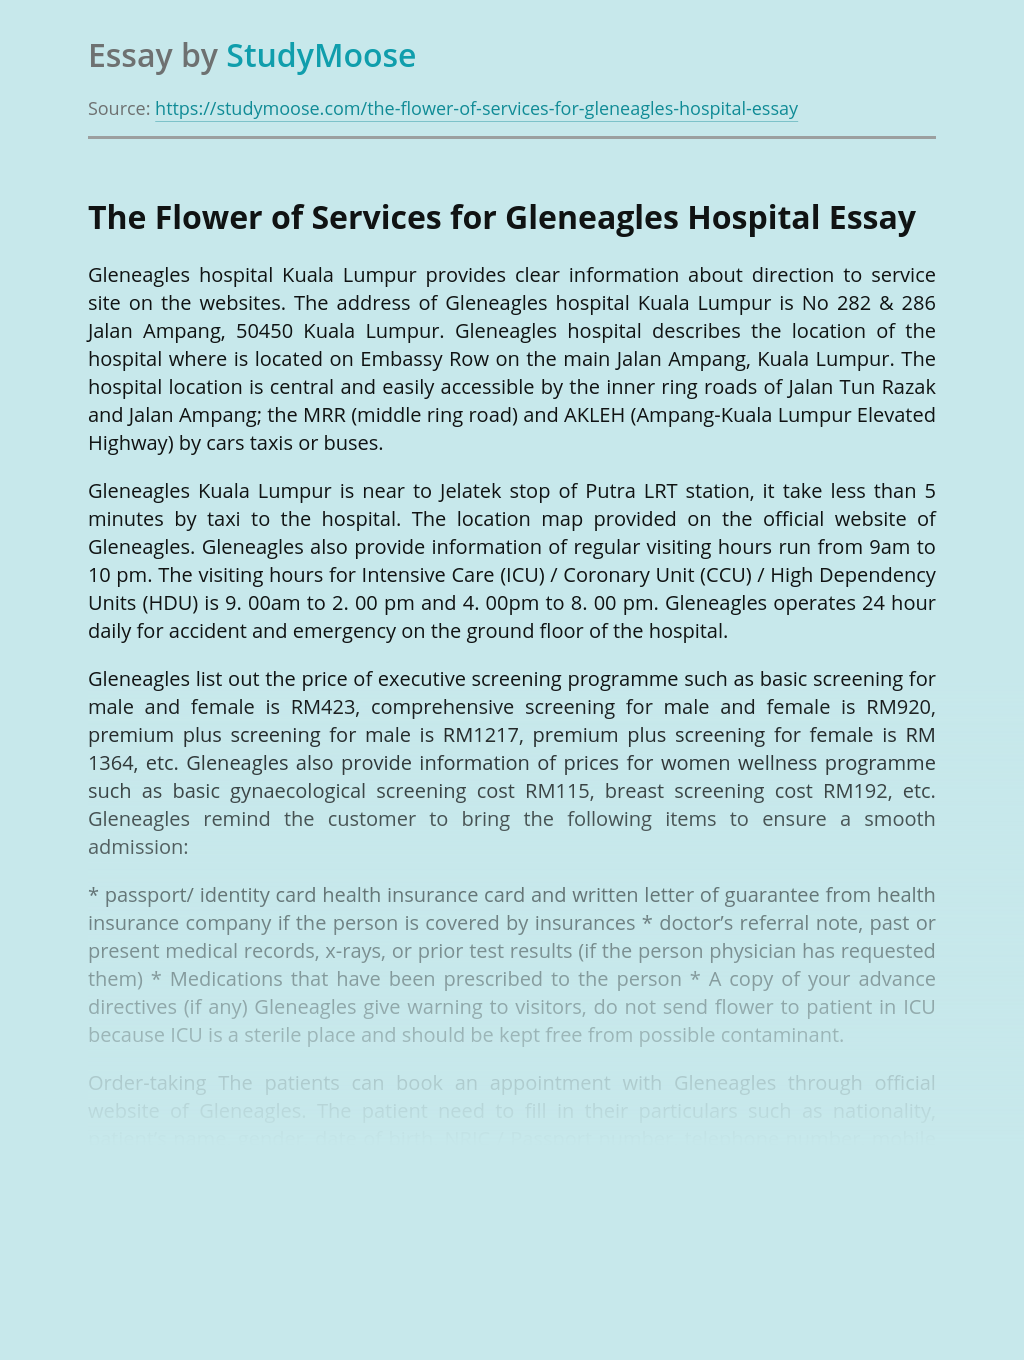 The Flower of Services for Gleneagles Hospital